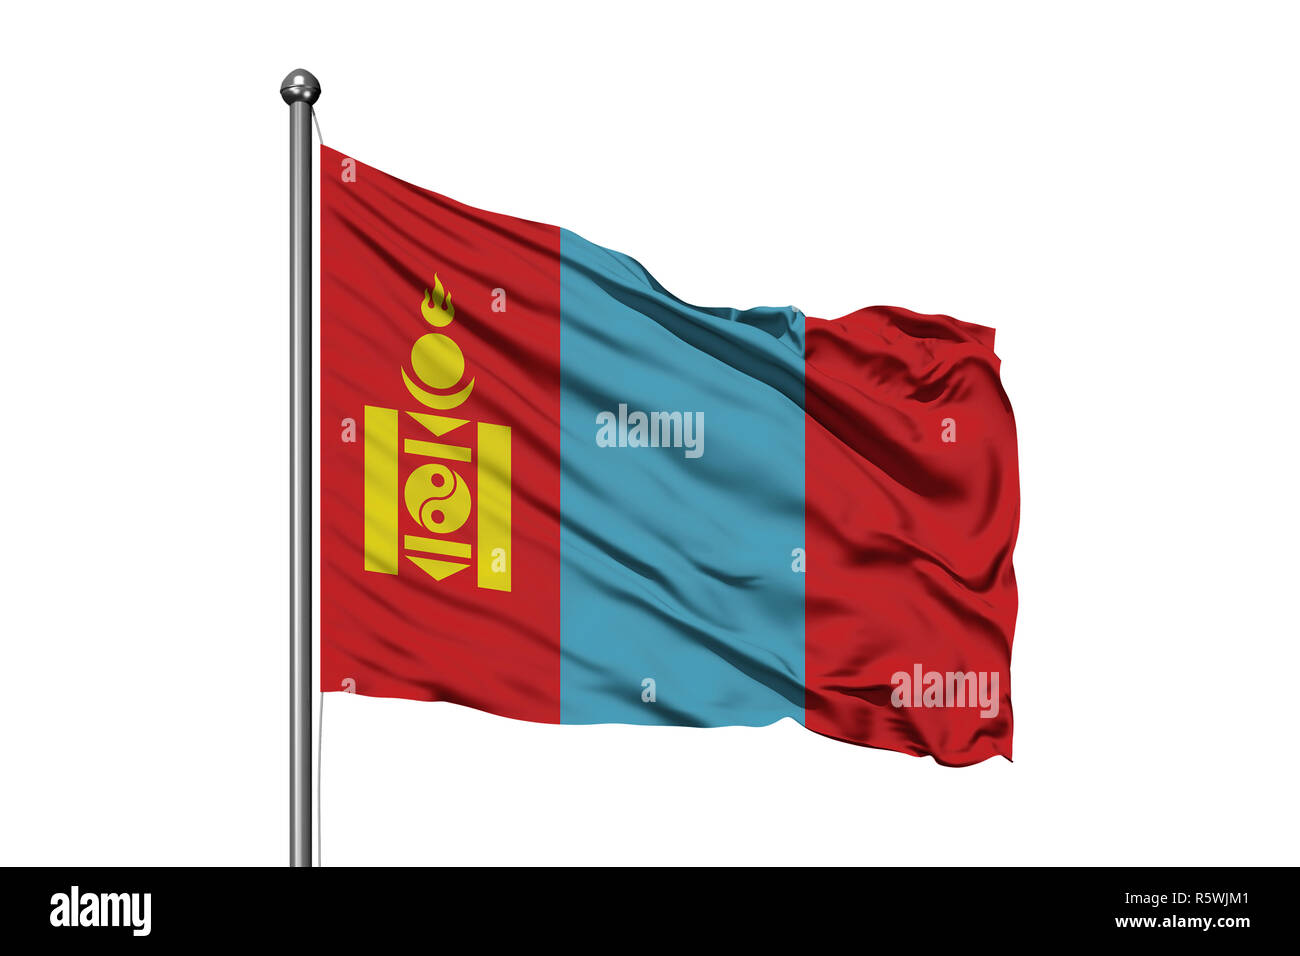 Flag of Mongolia waving in the wind, isolated white background. Mongolian flag. - Stock Image